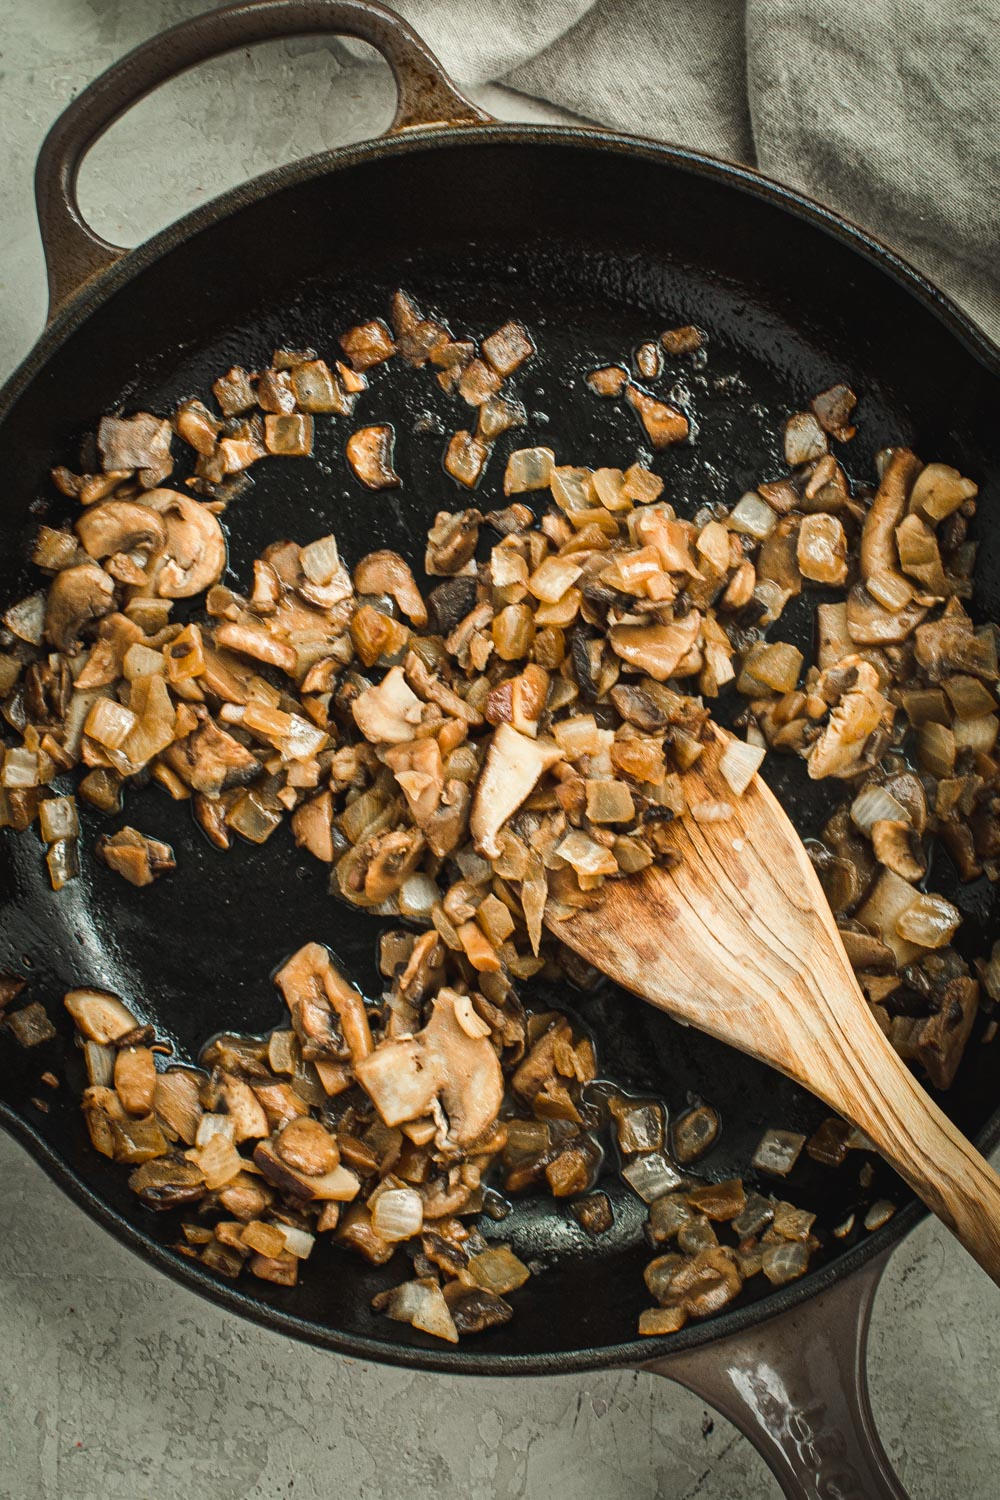 Mushrooms in iron skillet with wooden spatula.